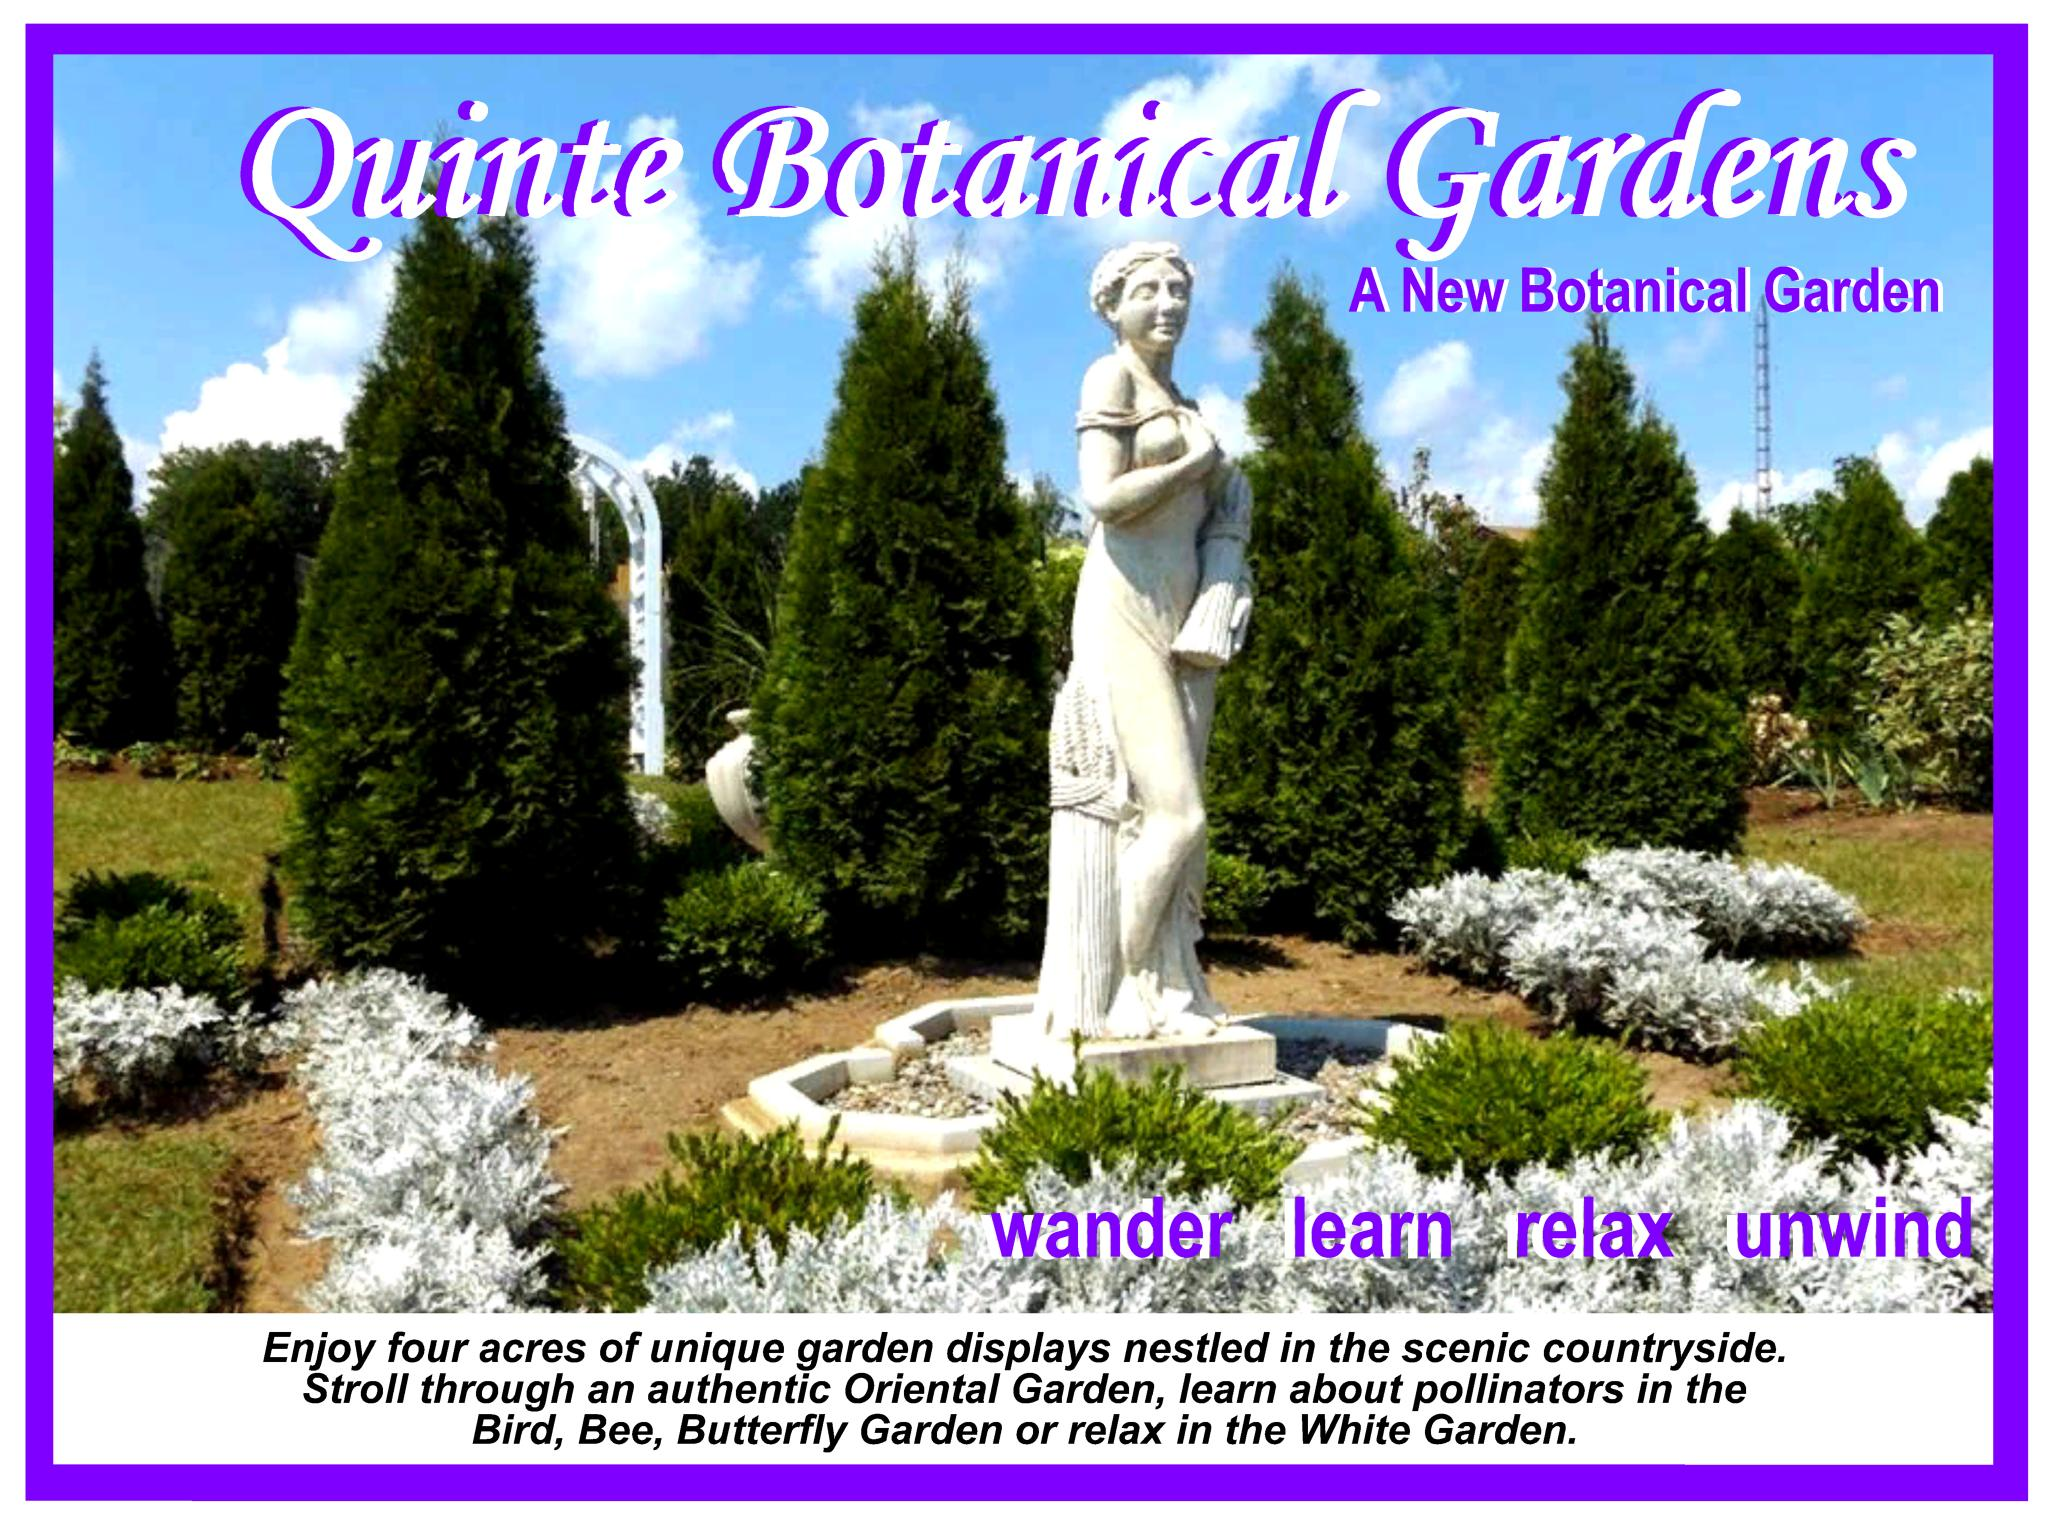 Quinte Botanical Gardens Featured Image